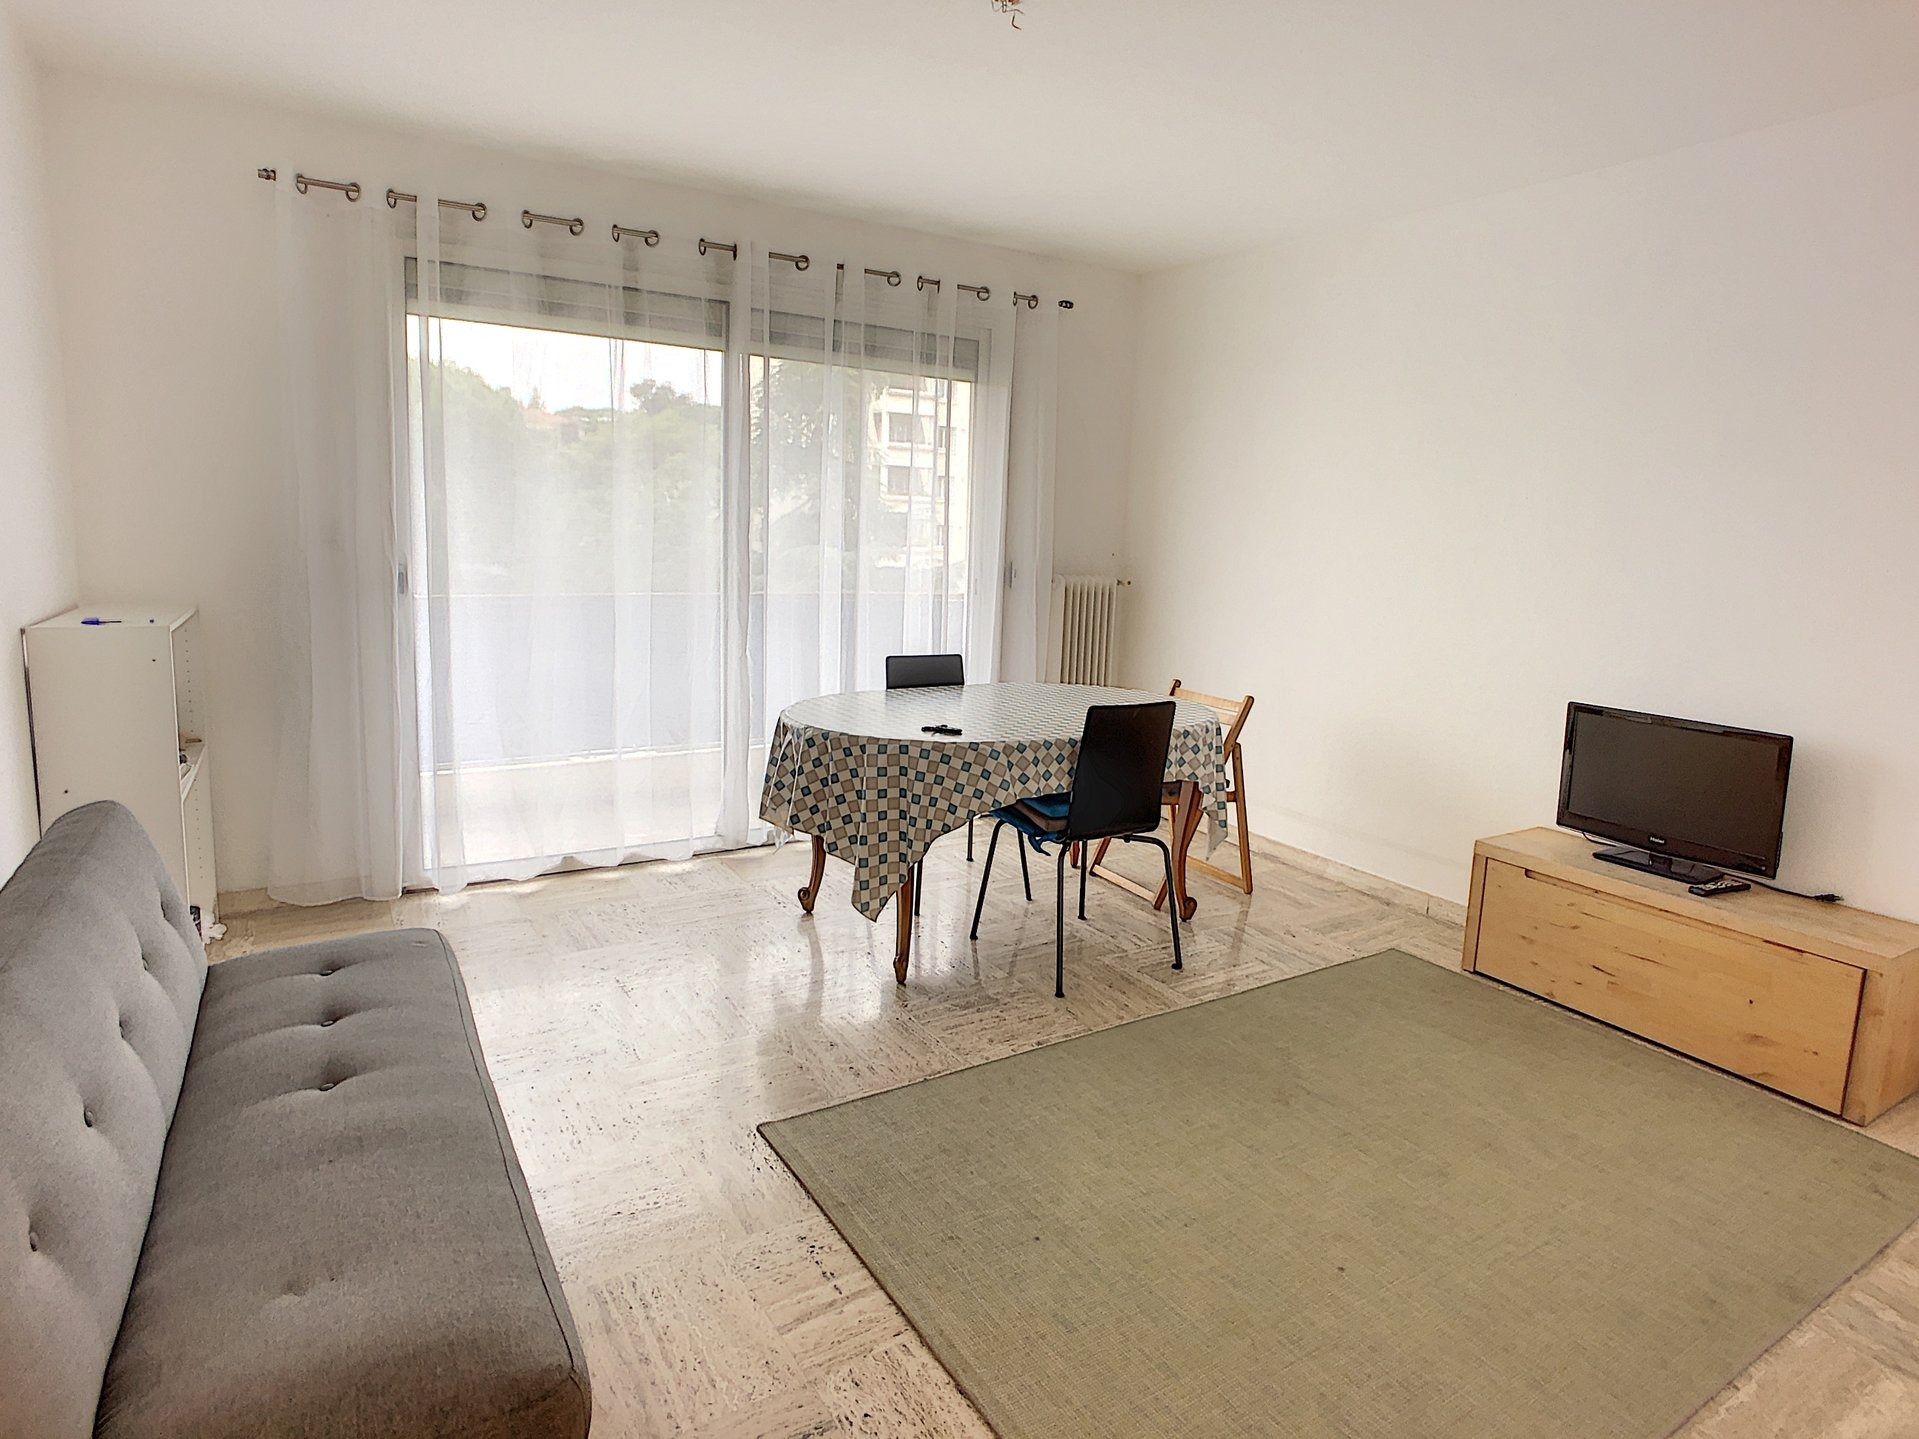 2 bedroom 63 sqm with terrace, parking and cellar